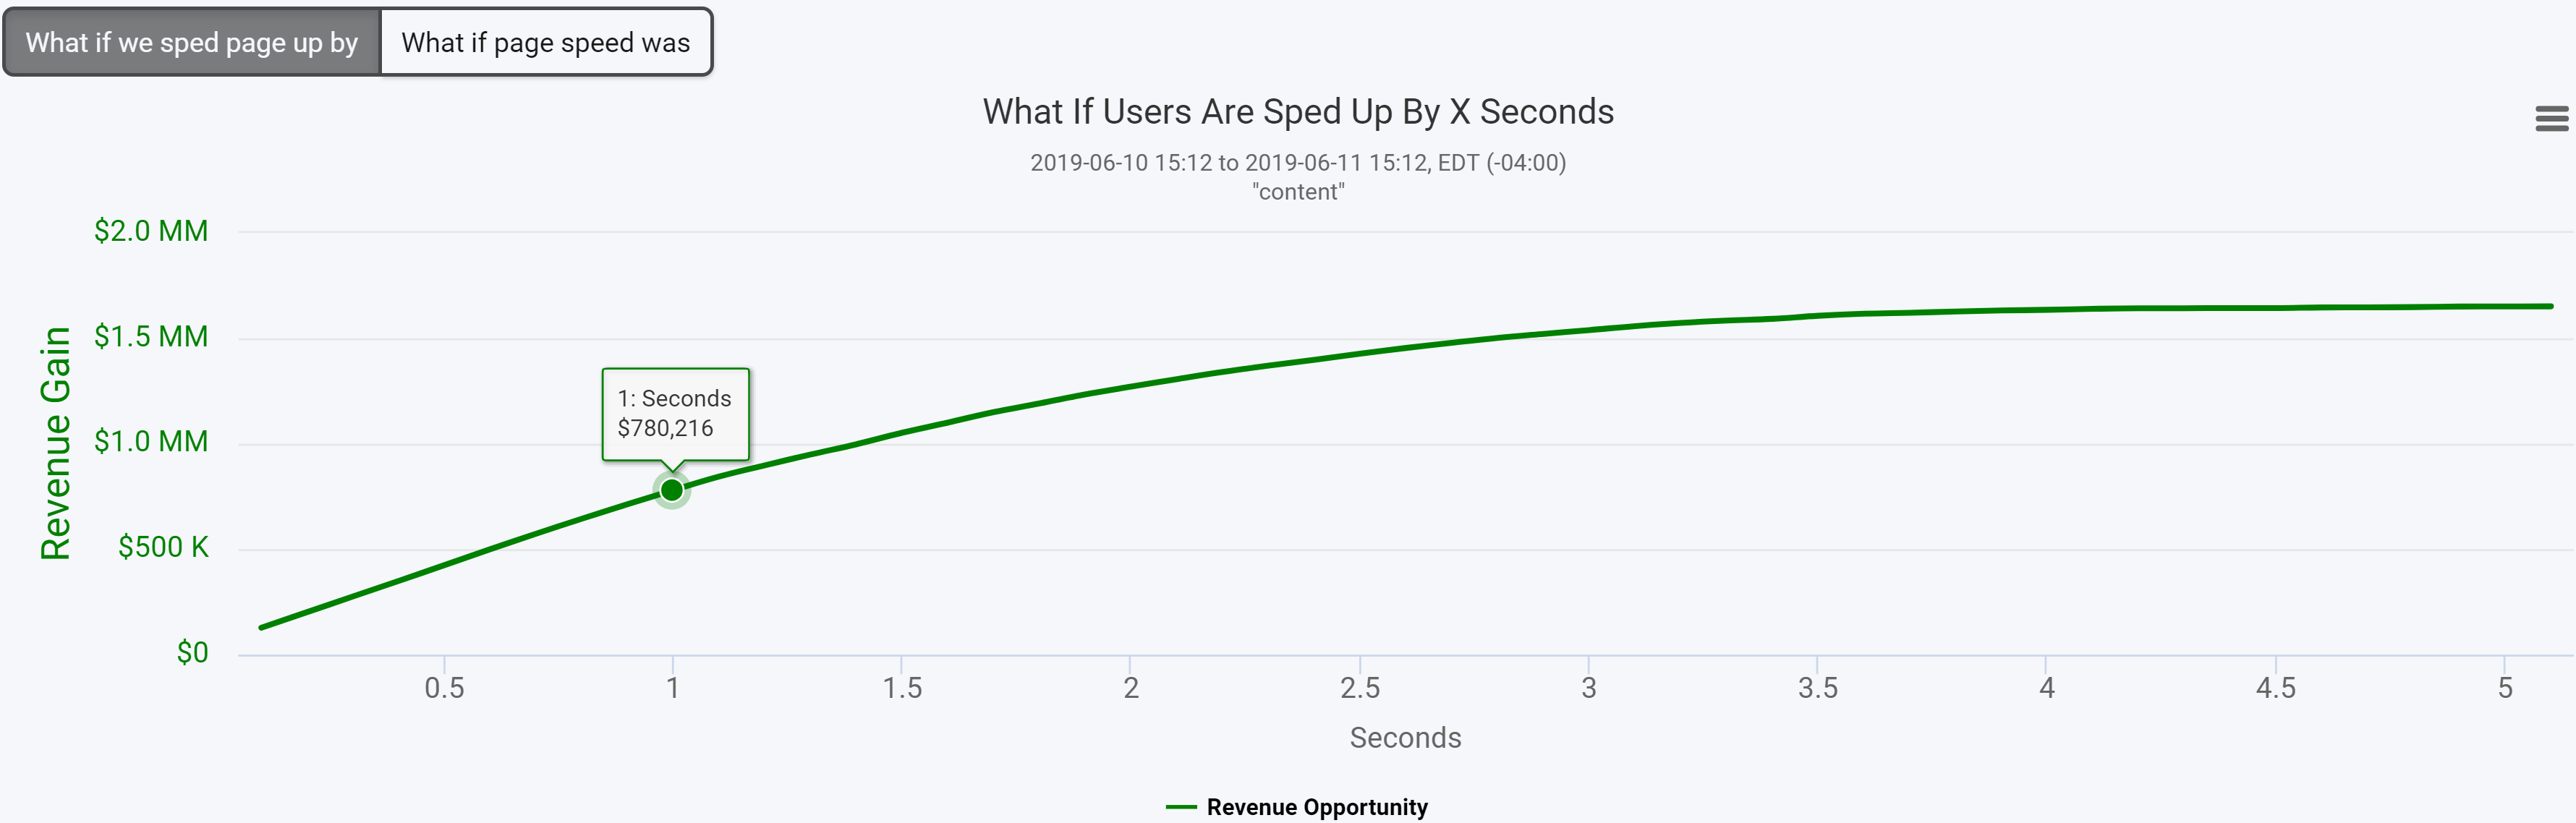 7_What_if_Users_are_Sped_Up_by_X_Seconds.png